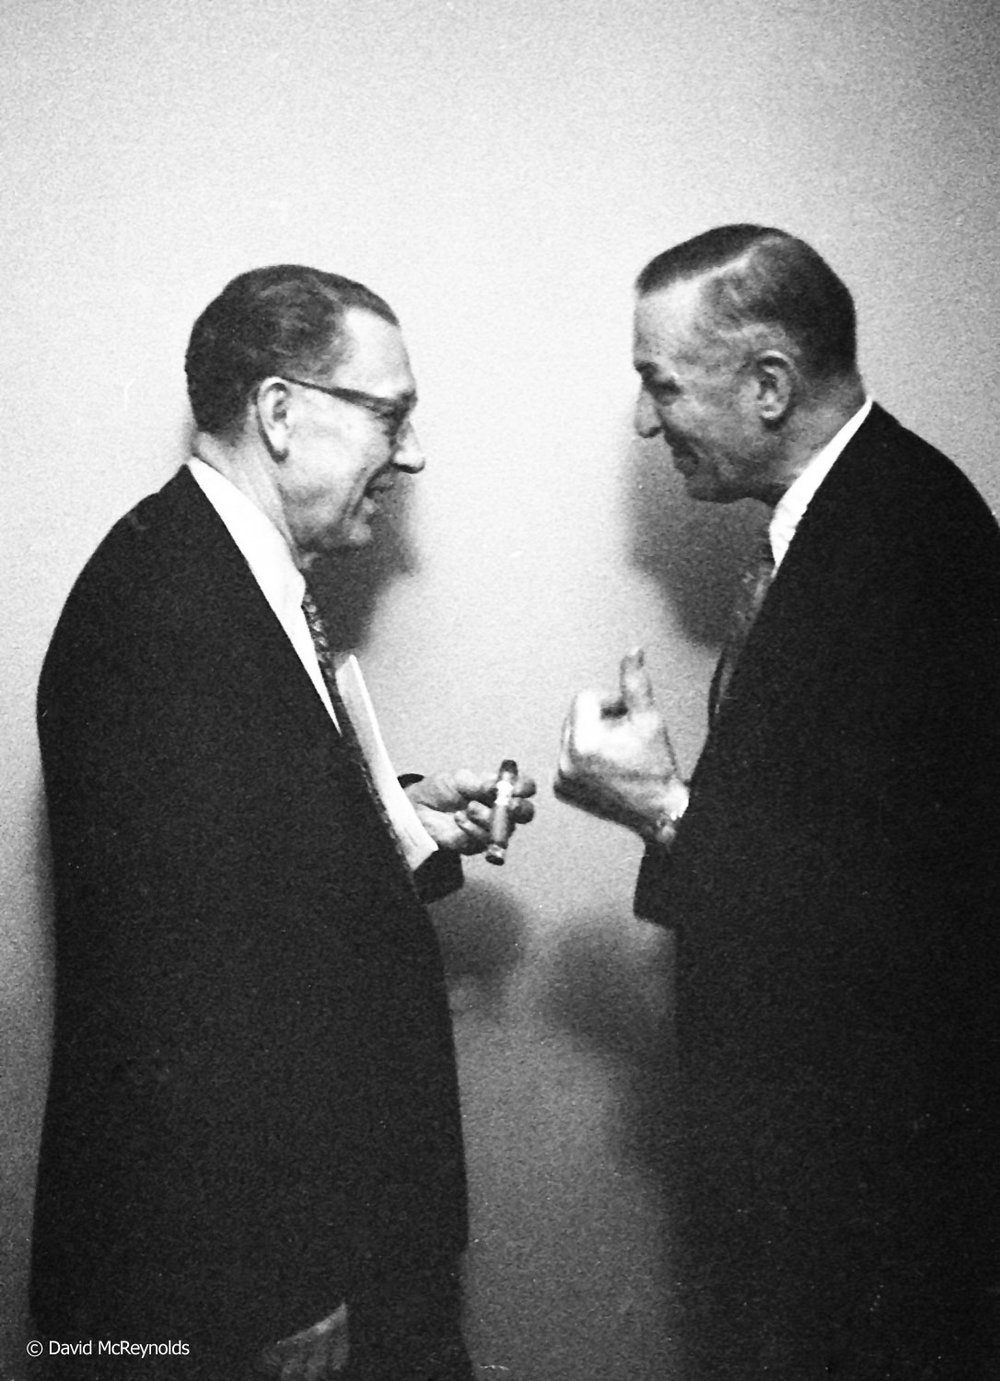 Gus Gerber (left) and Louis Waldman of the SDF between sessions. 1957.